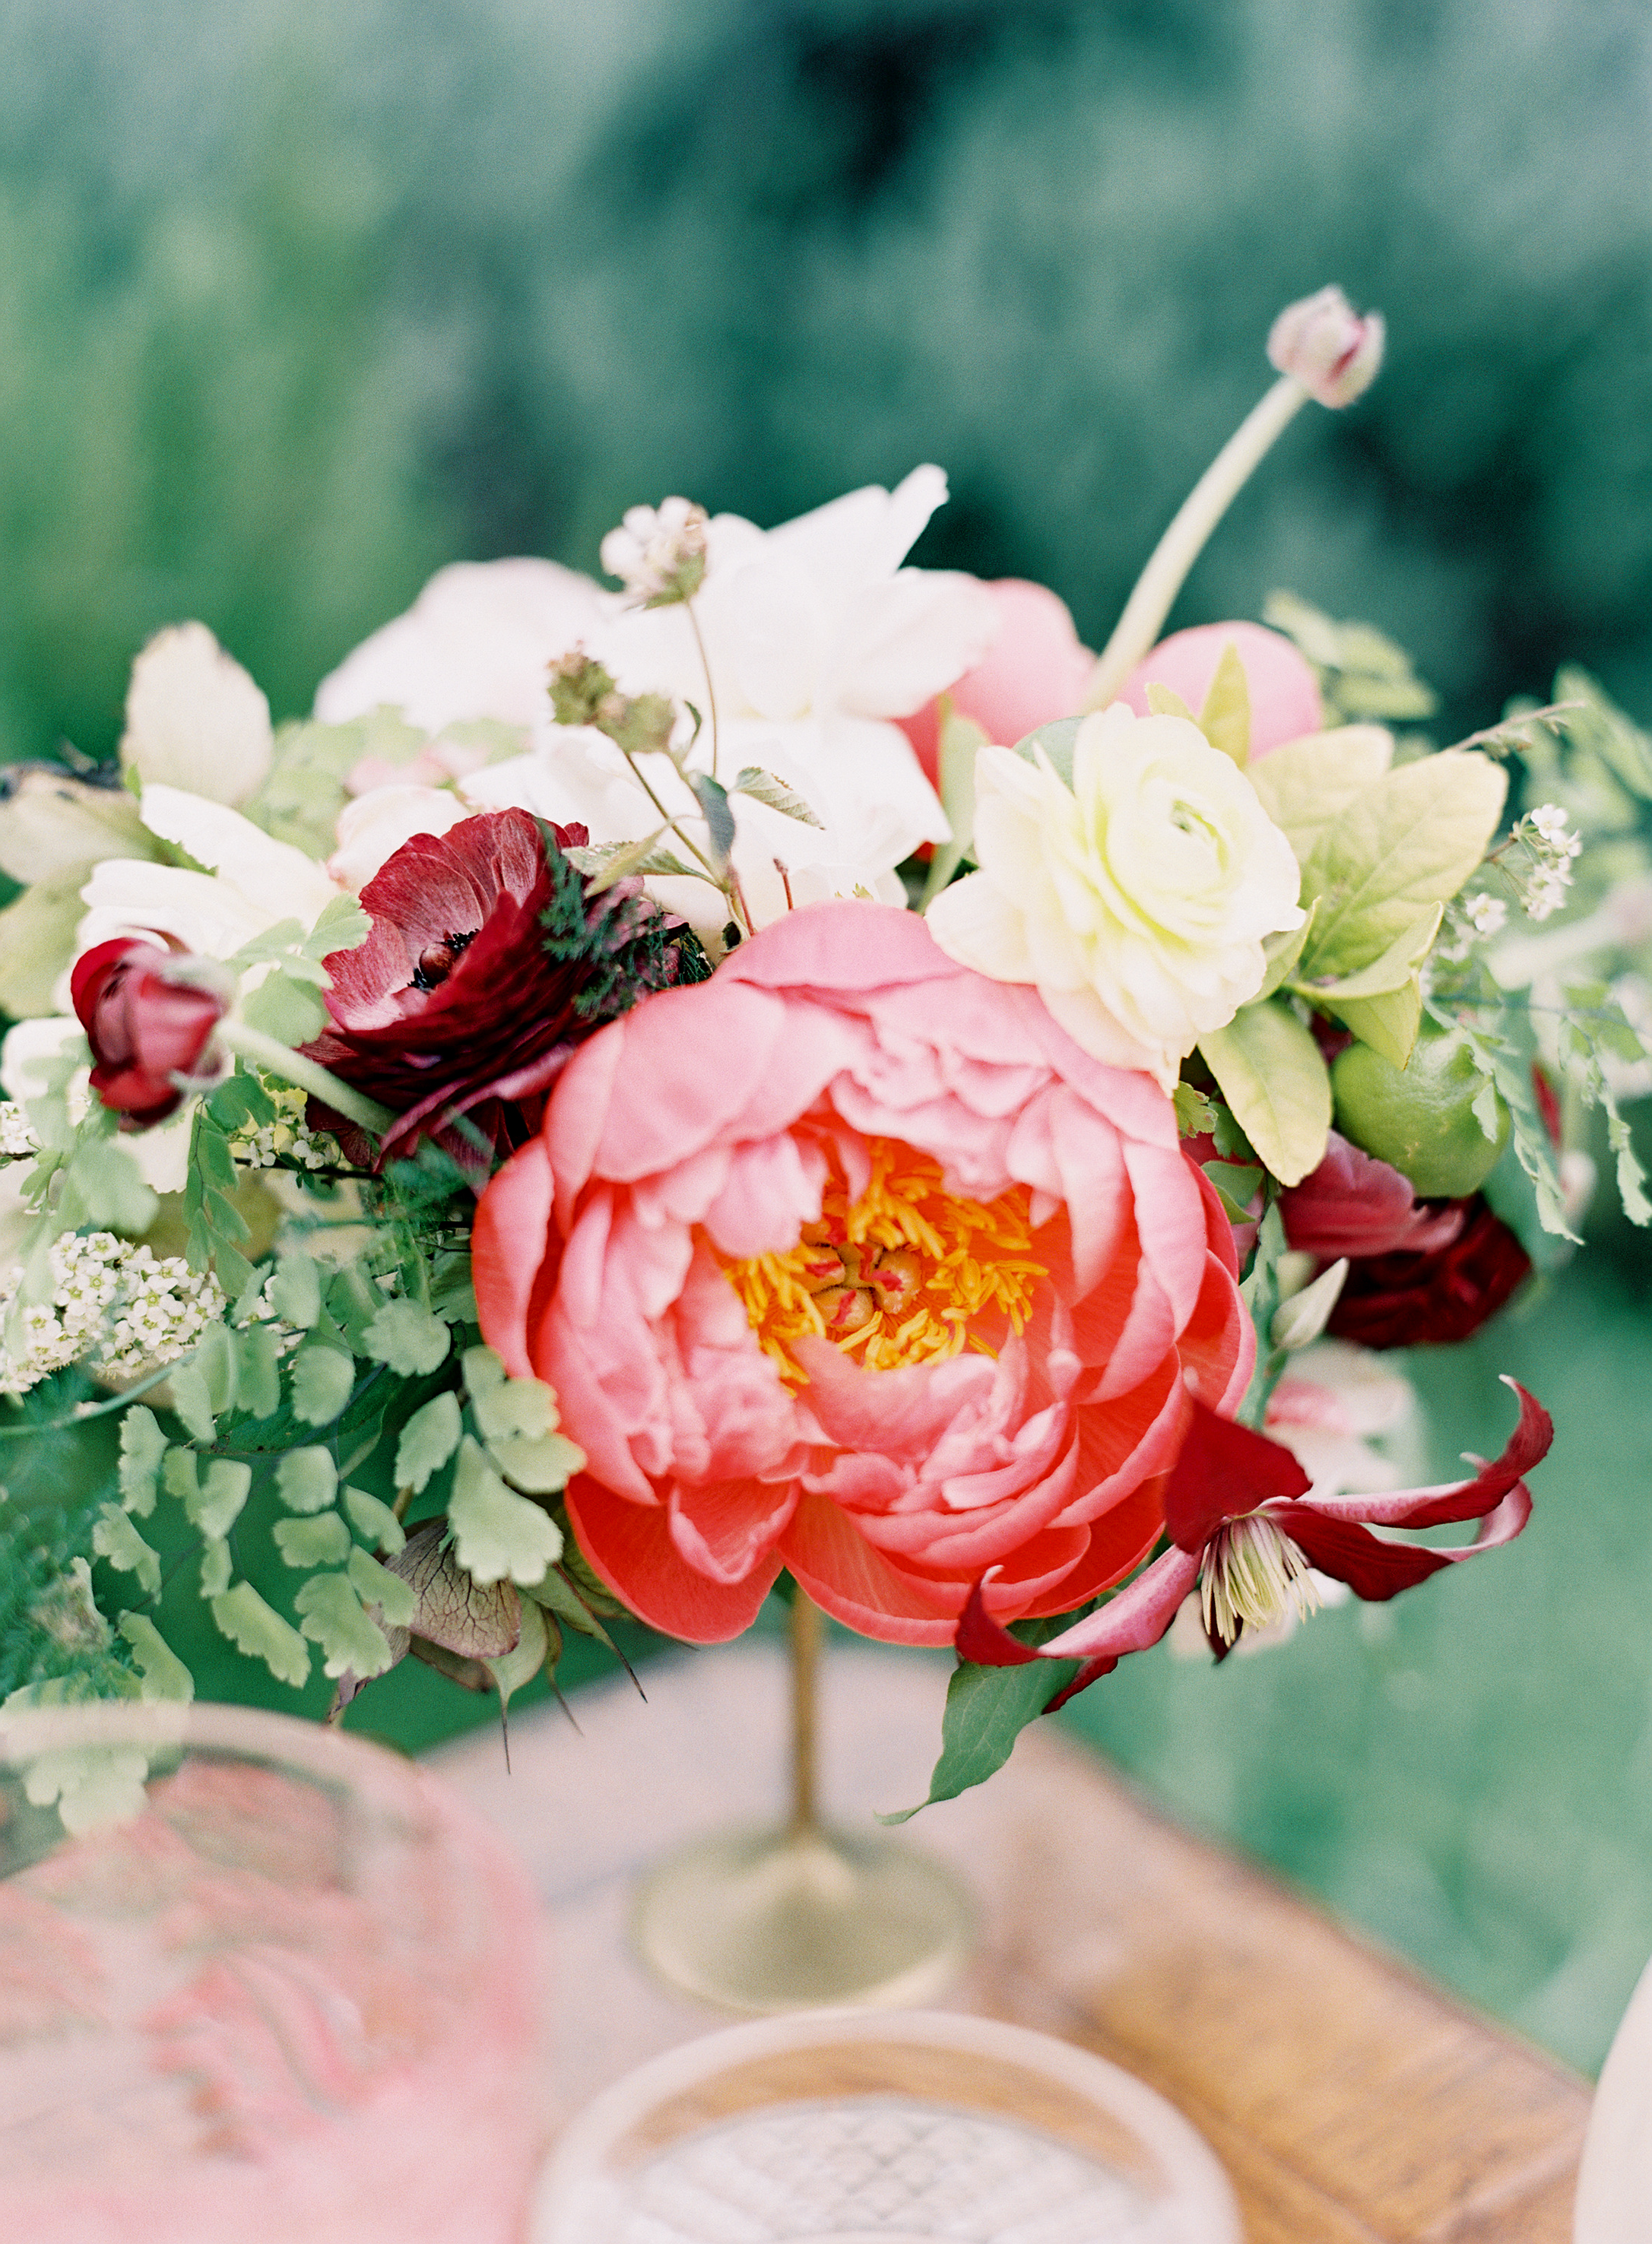 Flowers & Decor, Wedding Style, pink, red, green, Centerpieces, Spring Weddings, Garden Weddings, Shabby Chic Weddings, Spring Wedding Flowers & Decor, Summer Wedding Flowers & Decor